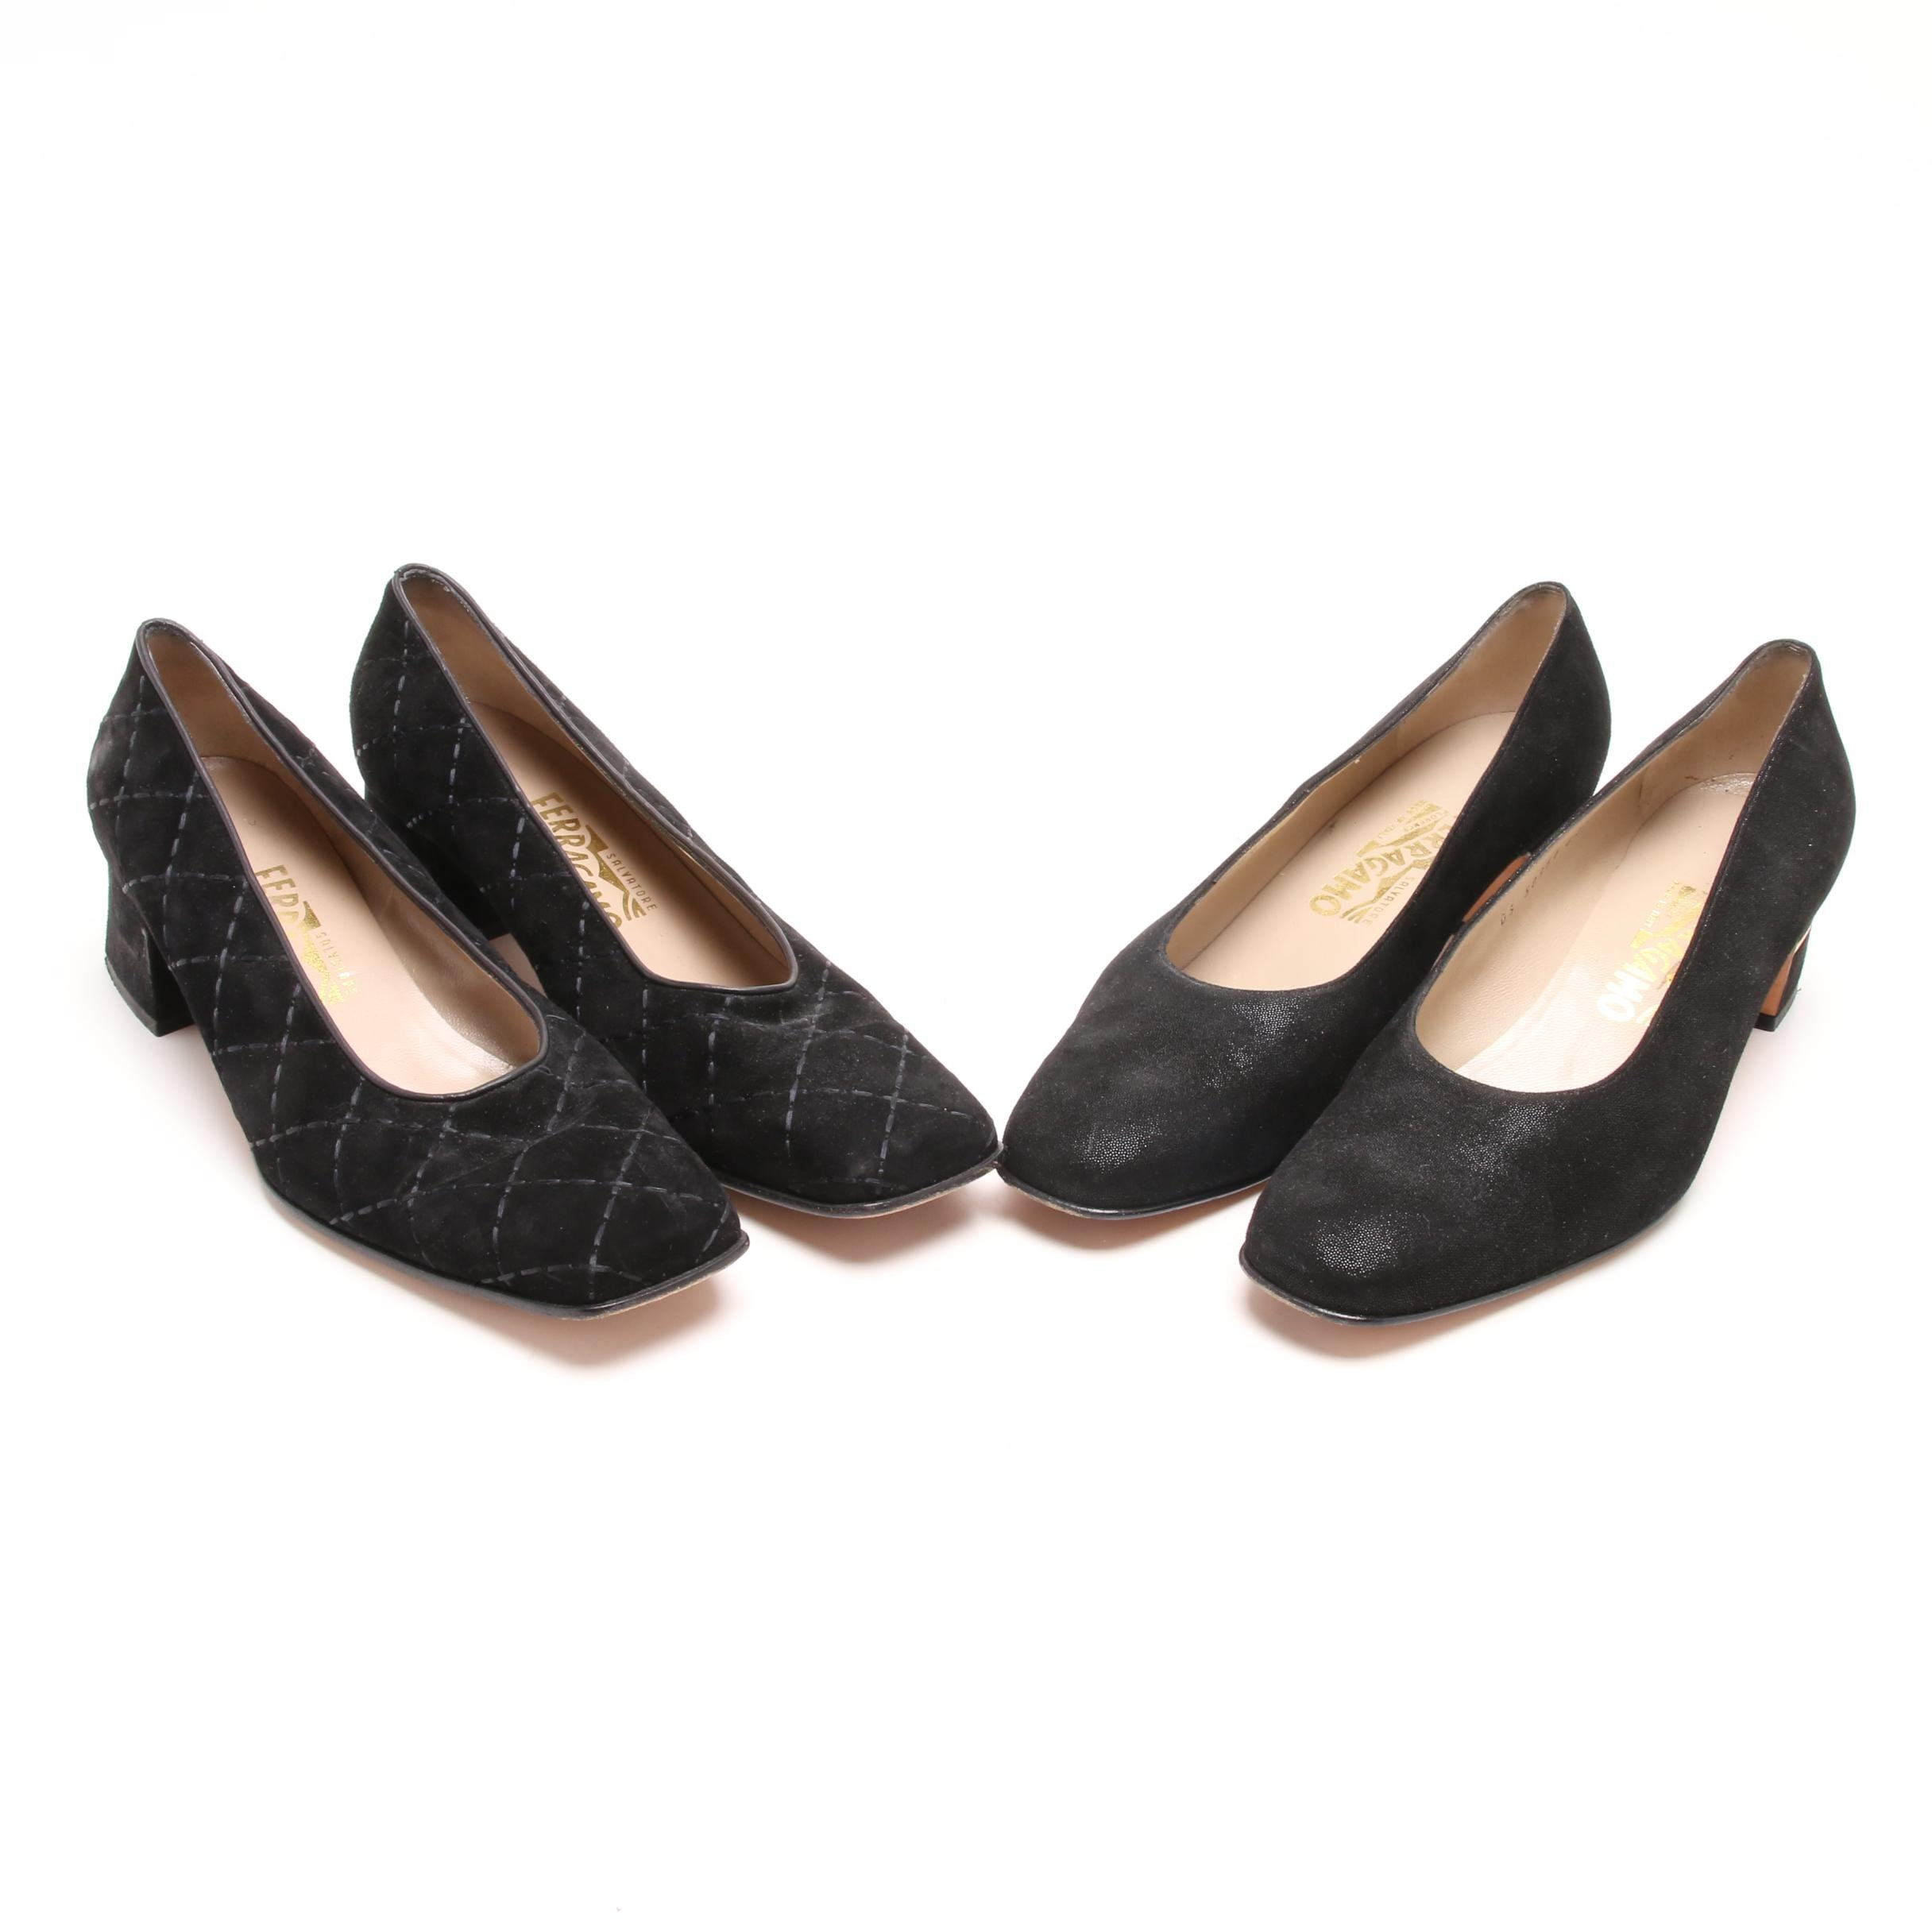 Two Pair of Women's Salvatore Ferragamo Suede Low-Heeled Shoes